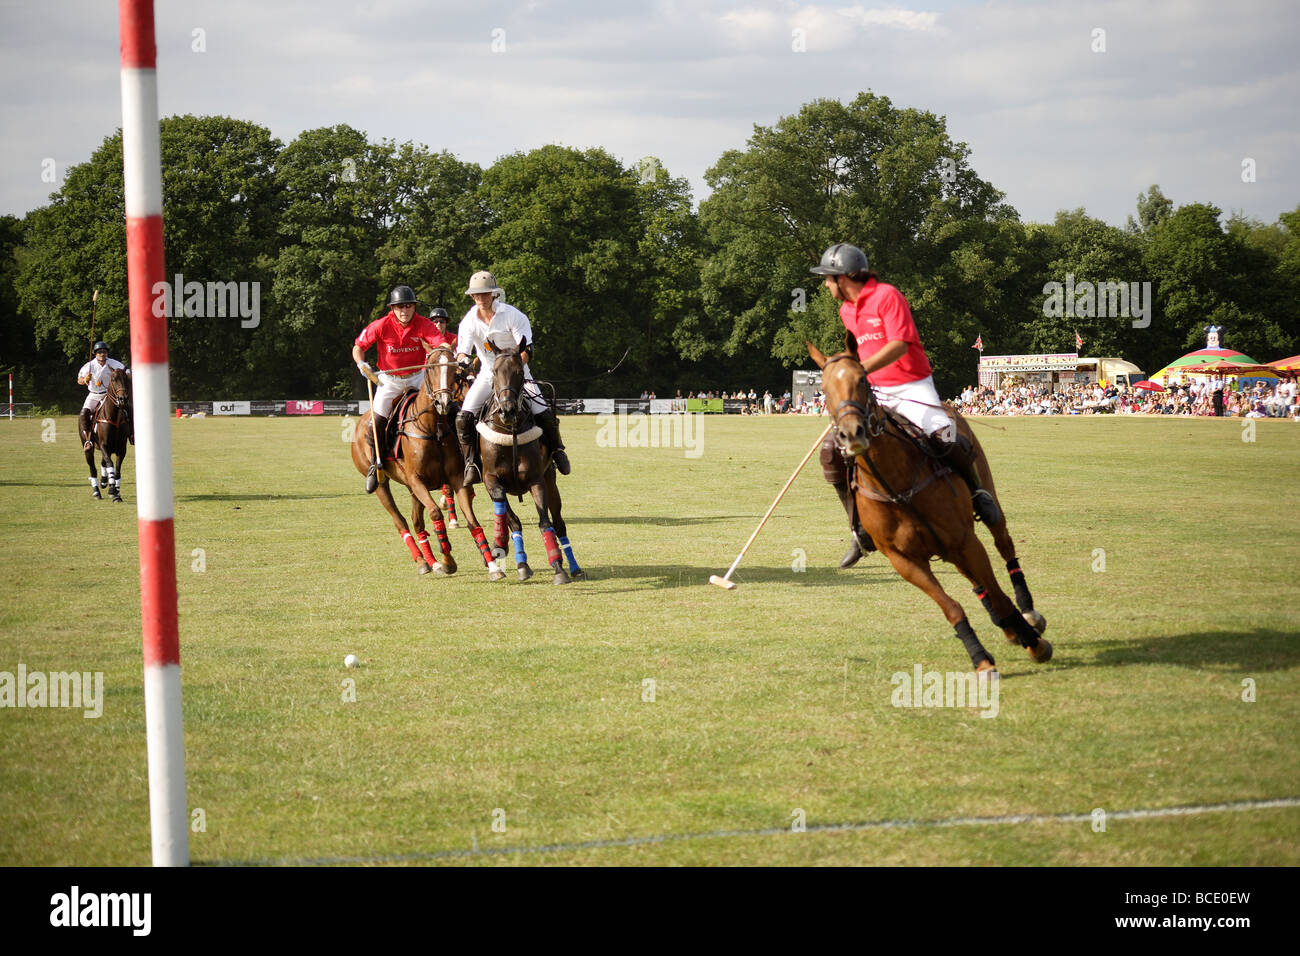 Polo match,shot at goal outdoors summer pursuit,England vs Argentina - Stock Image